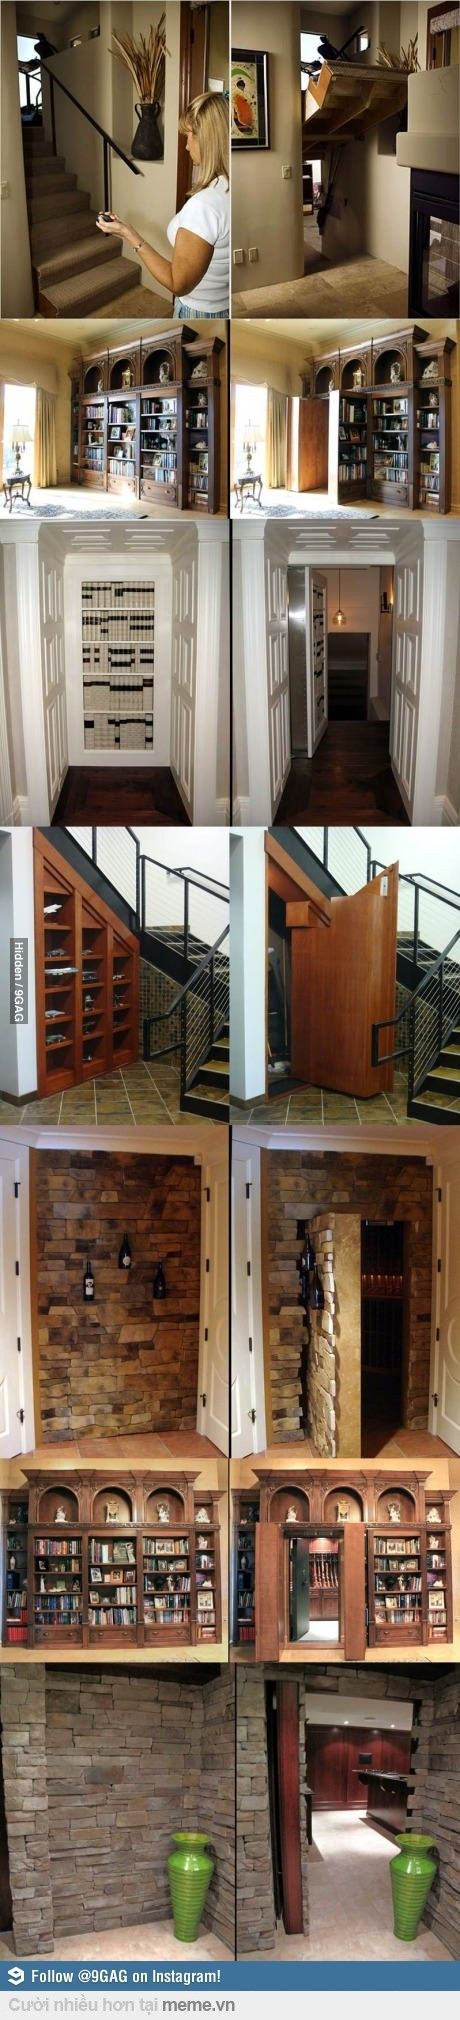 I'd love to have an house with some secret passages